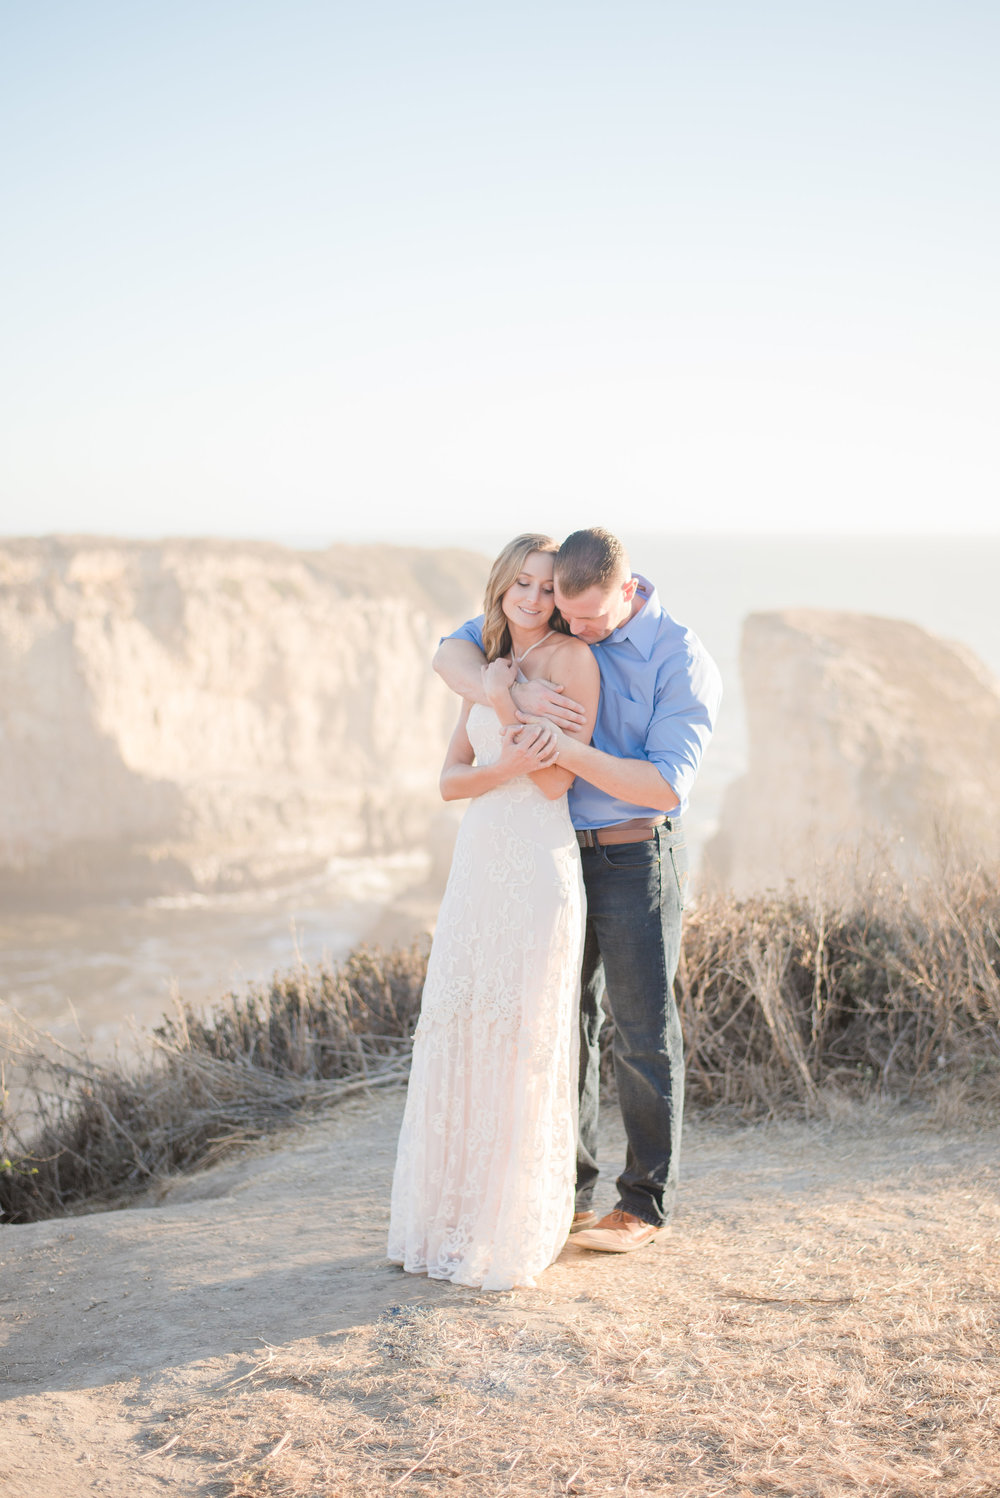 outdoor engagement photoshoot in santa cruz on cliff near ocean at golden hour bride wearing cream lace maxi dress soft glam neutral makeup by kim baker beauty san jose california makeup artist